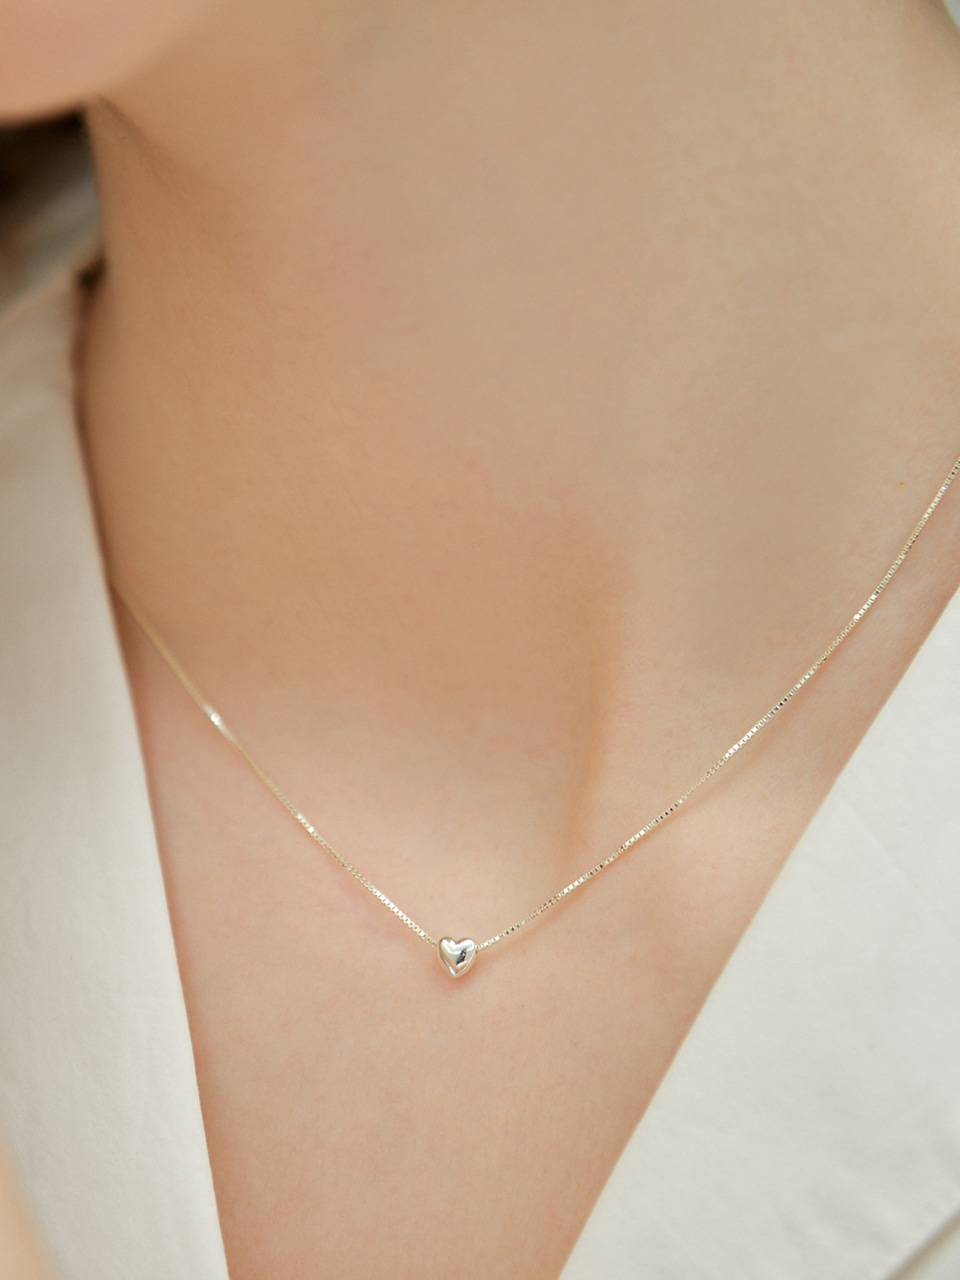 [오하영 착용] petit heart necklace